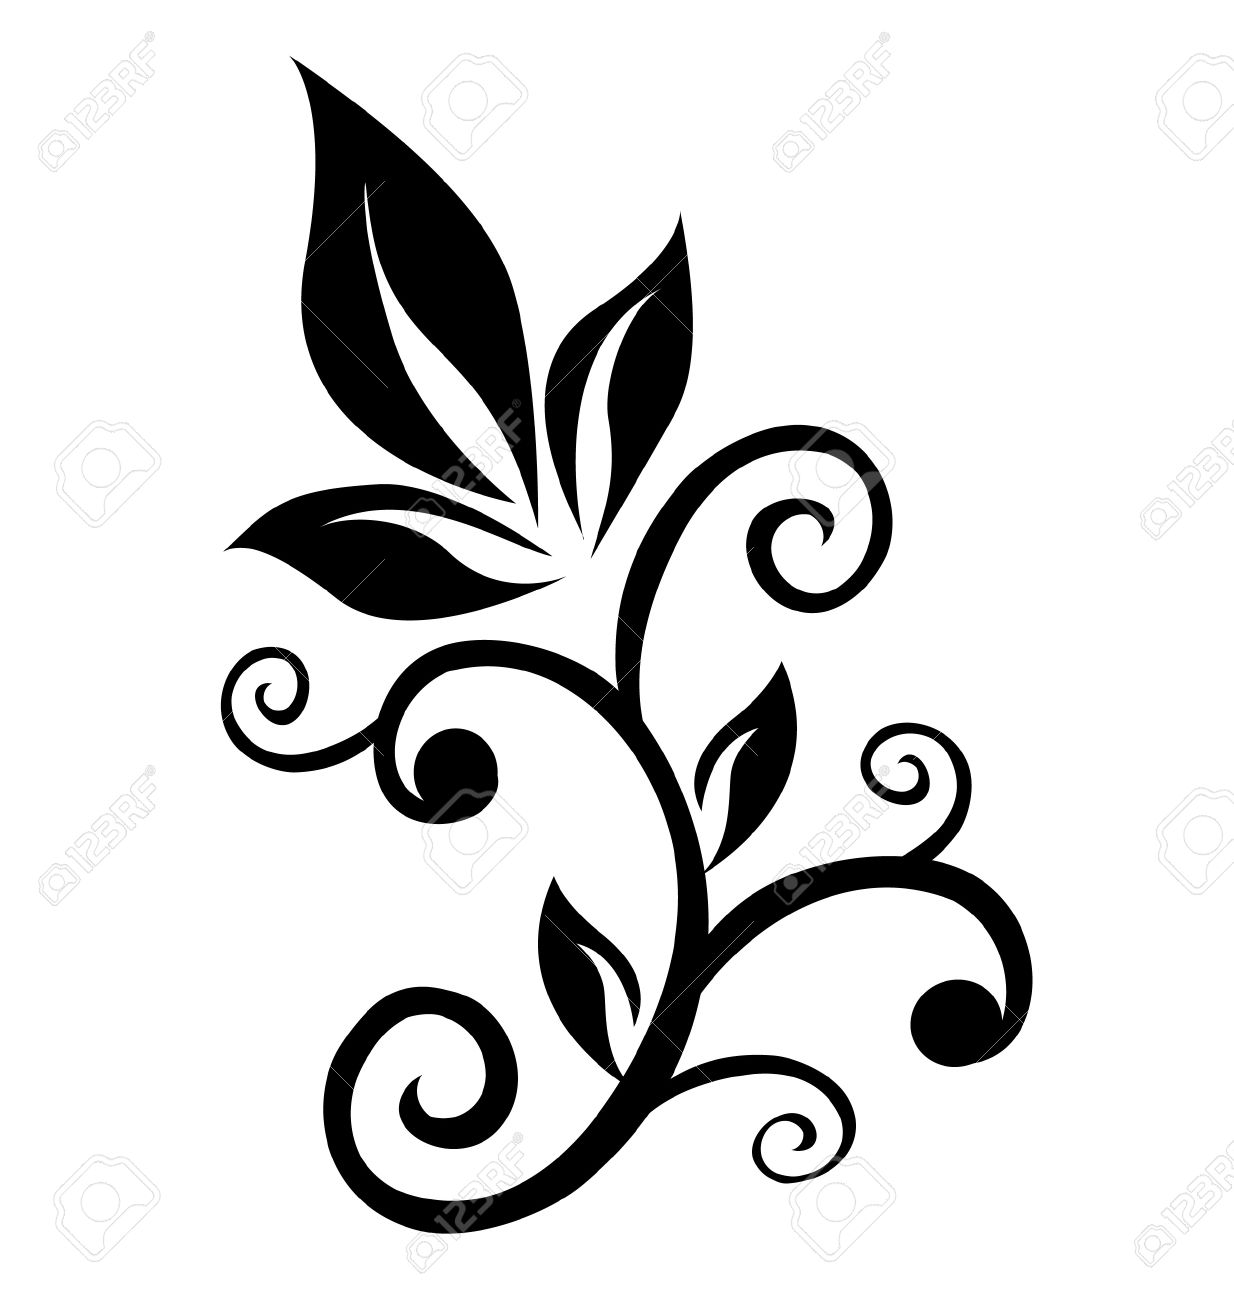 Floral swirl ornament element Stock Vector - 14161516